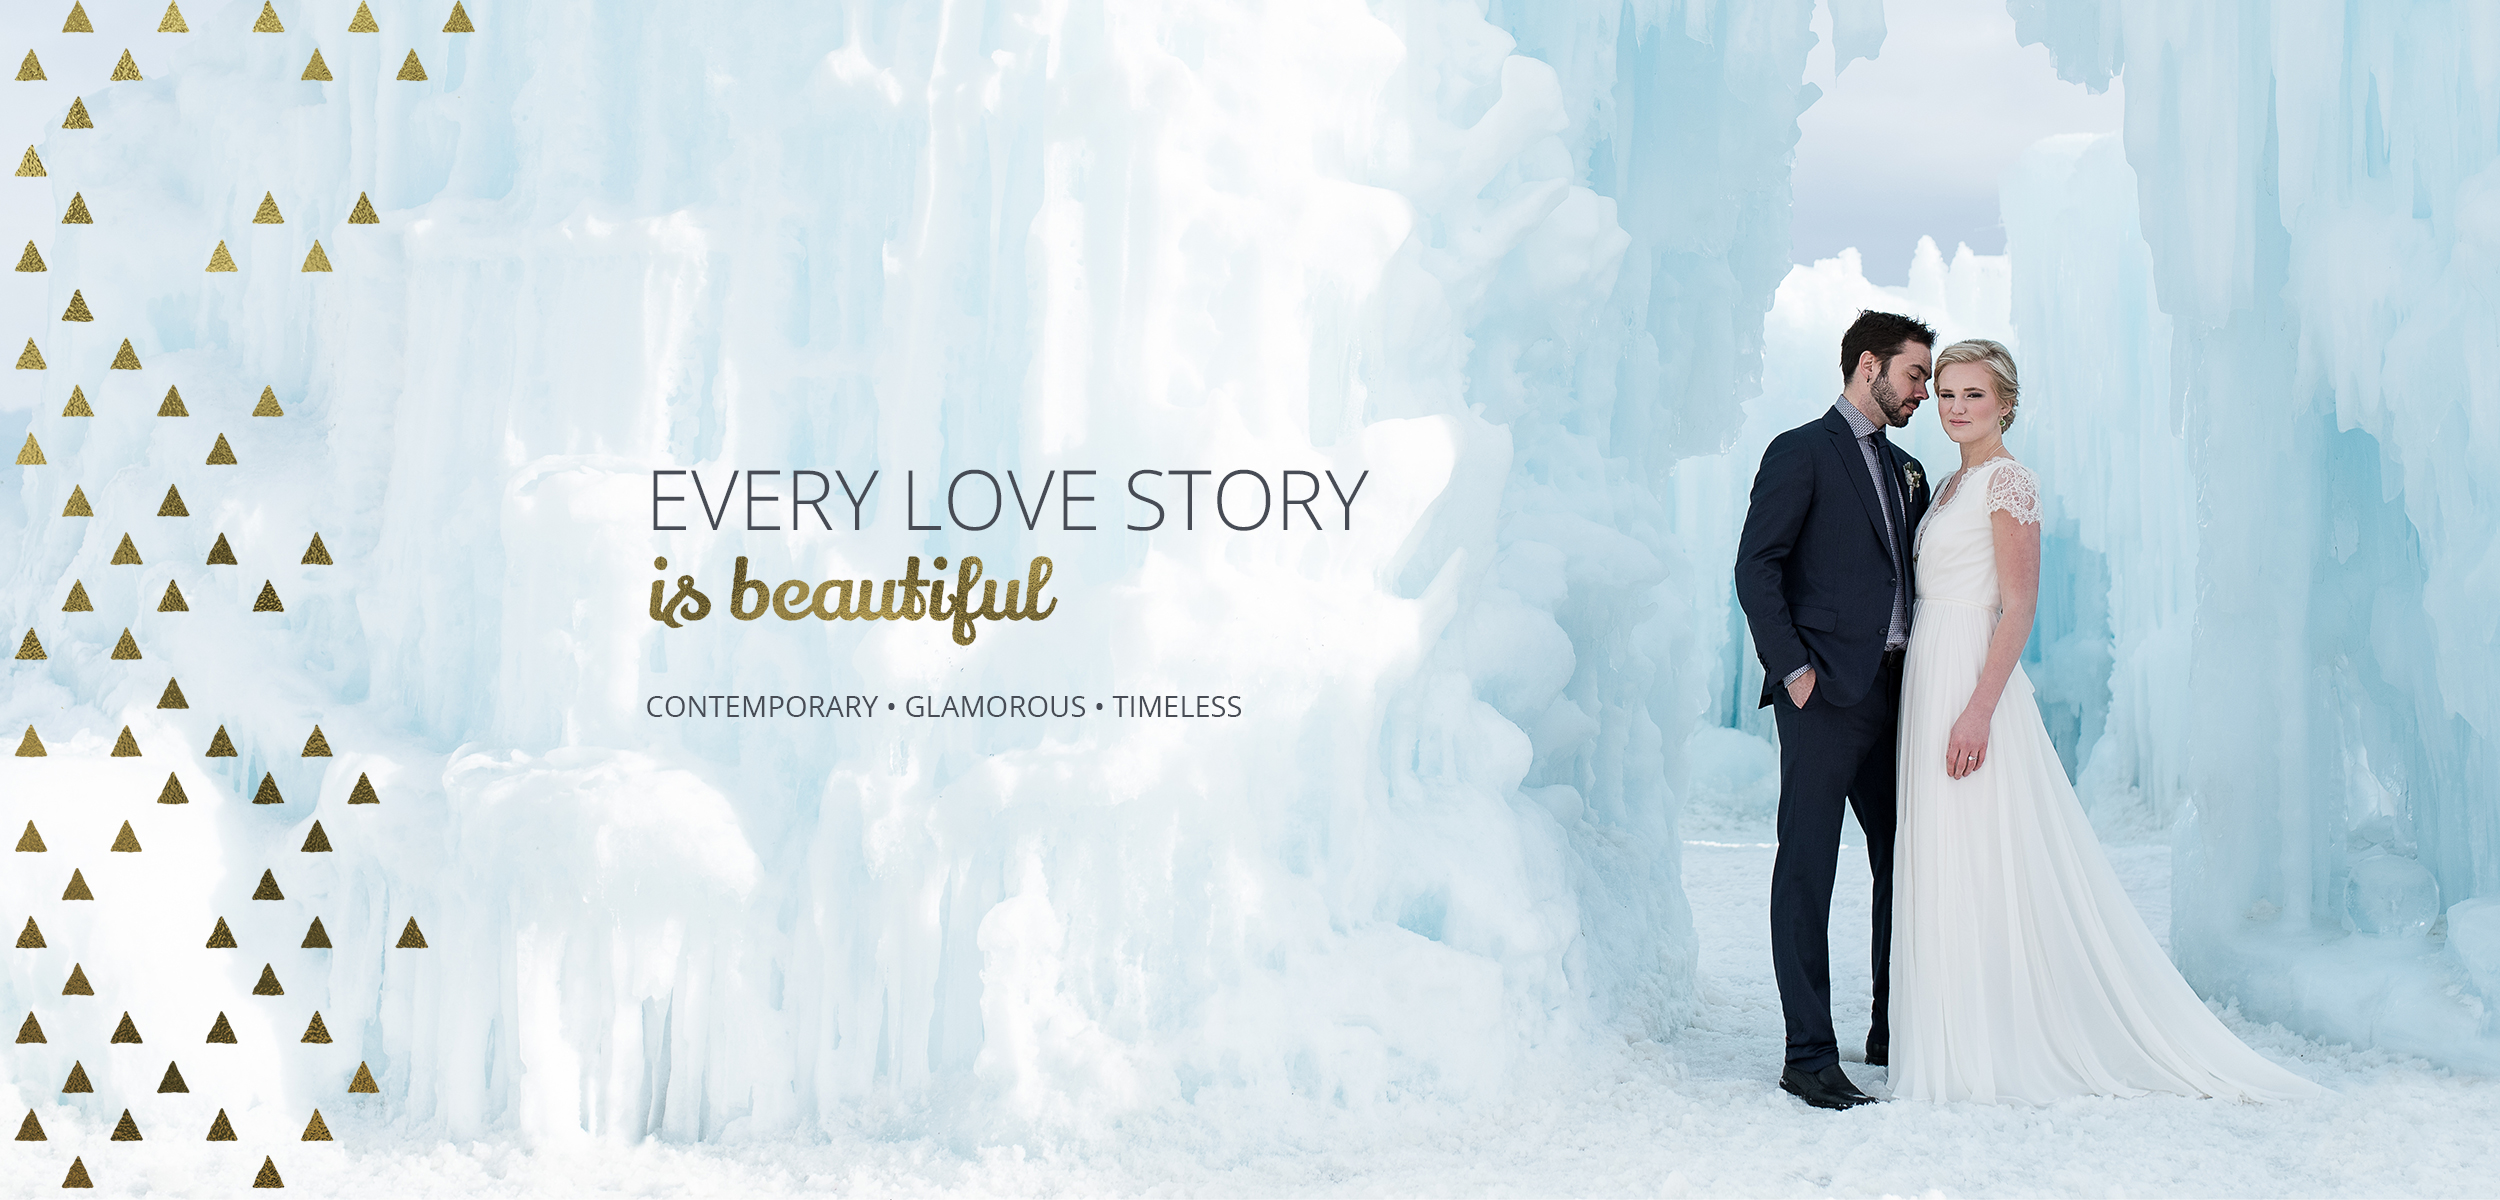 Ice Castle Nordic Inspired Styled Wedding. Photograph by Kelly Skinner of Friday Design + Photography.Every love story is beautiful. Contemporary, gorgeous, timeless